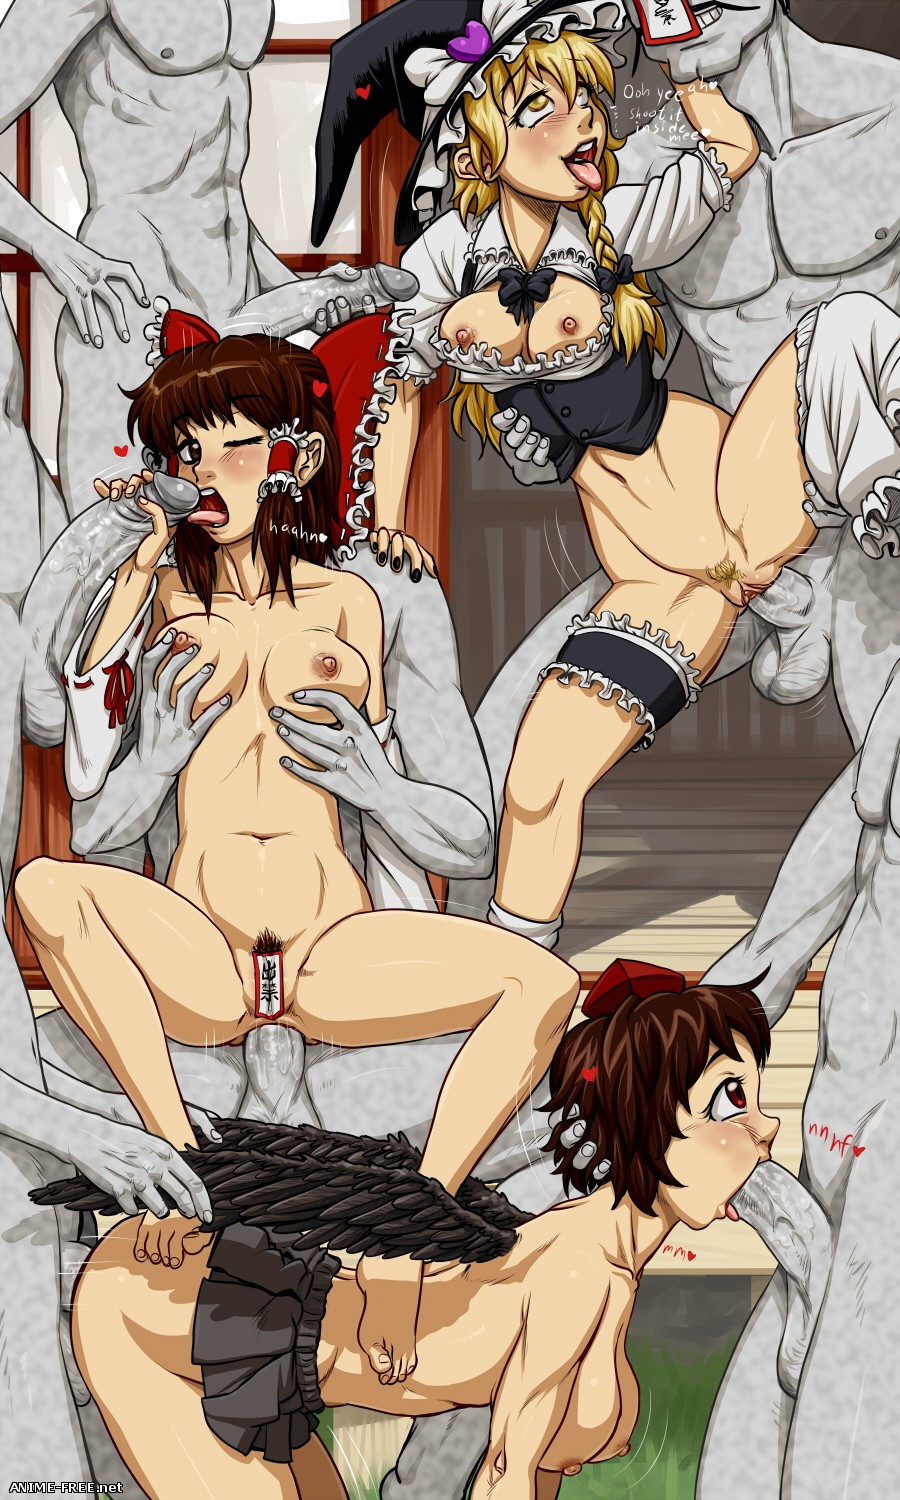 Spidu (Collection) - сборник картинок [Uncen] [JPG,PNG] Hentai ART